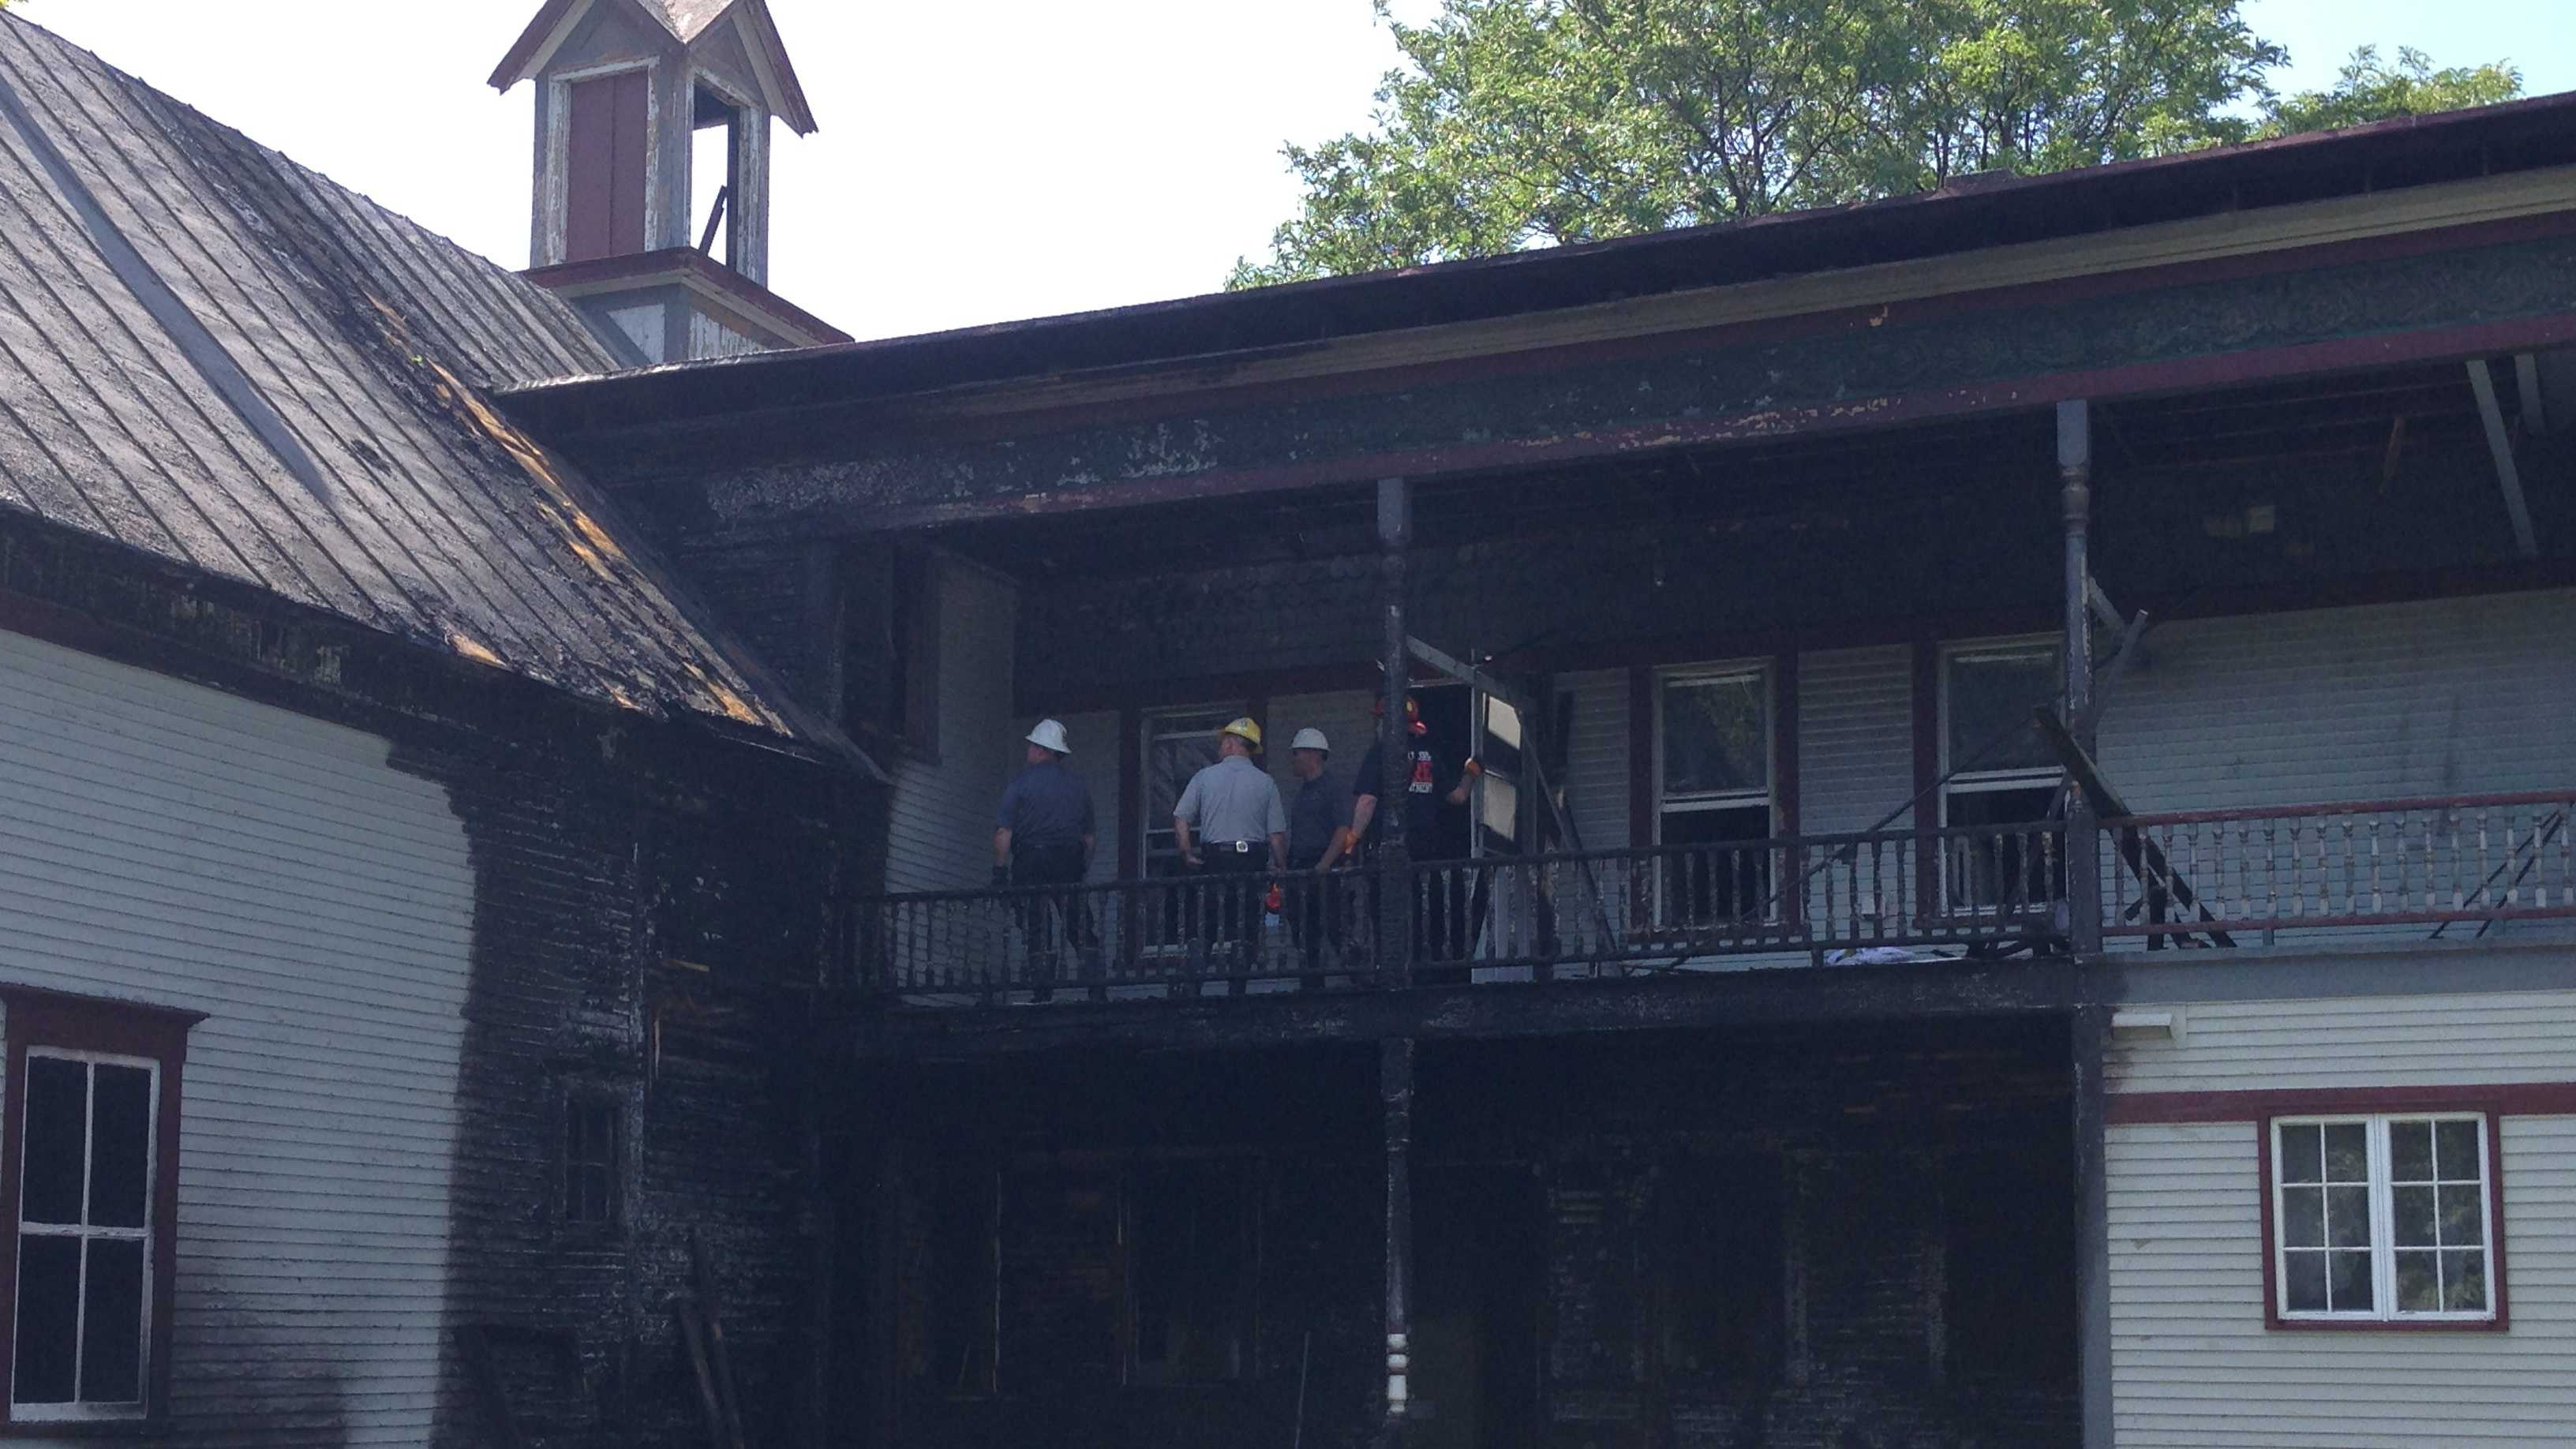 Serial arsonist suspected in string of fires - img